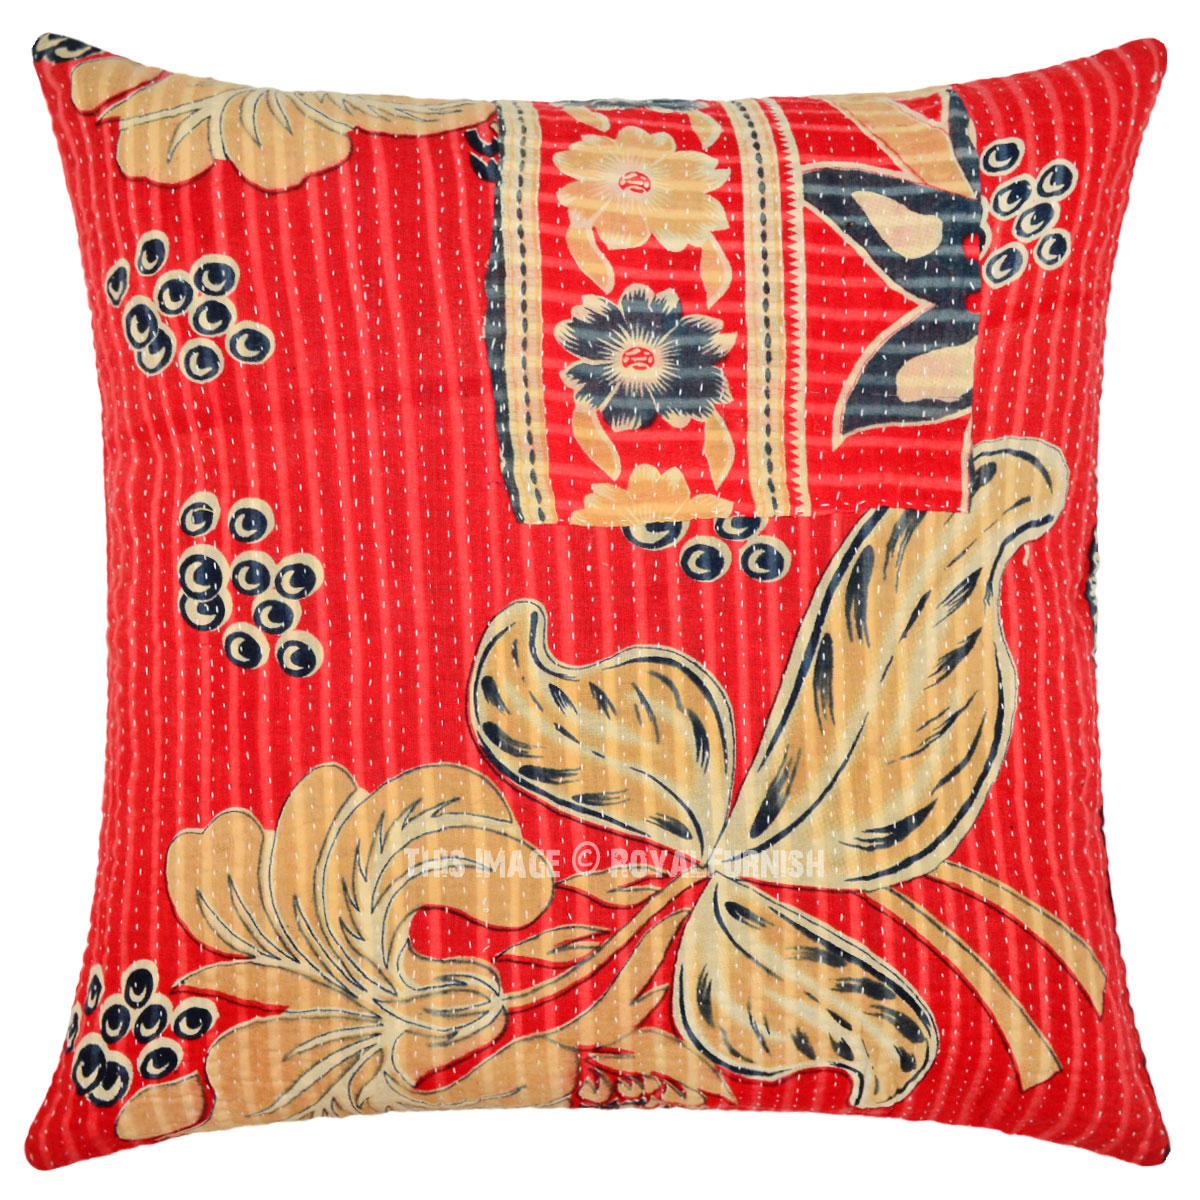 Vintage Decorative Pillow : 18X18 Red Multi Decorative Old Vintage Kantha Throw Pillow Cover - RoyalFurnish.com